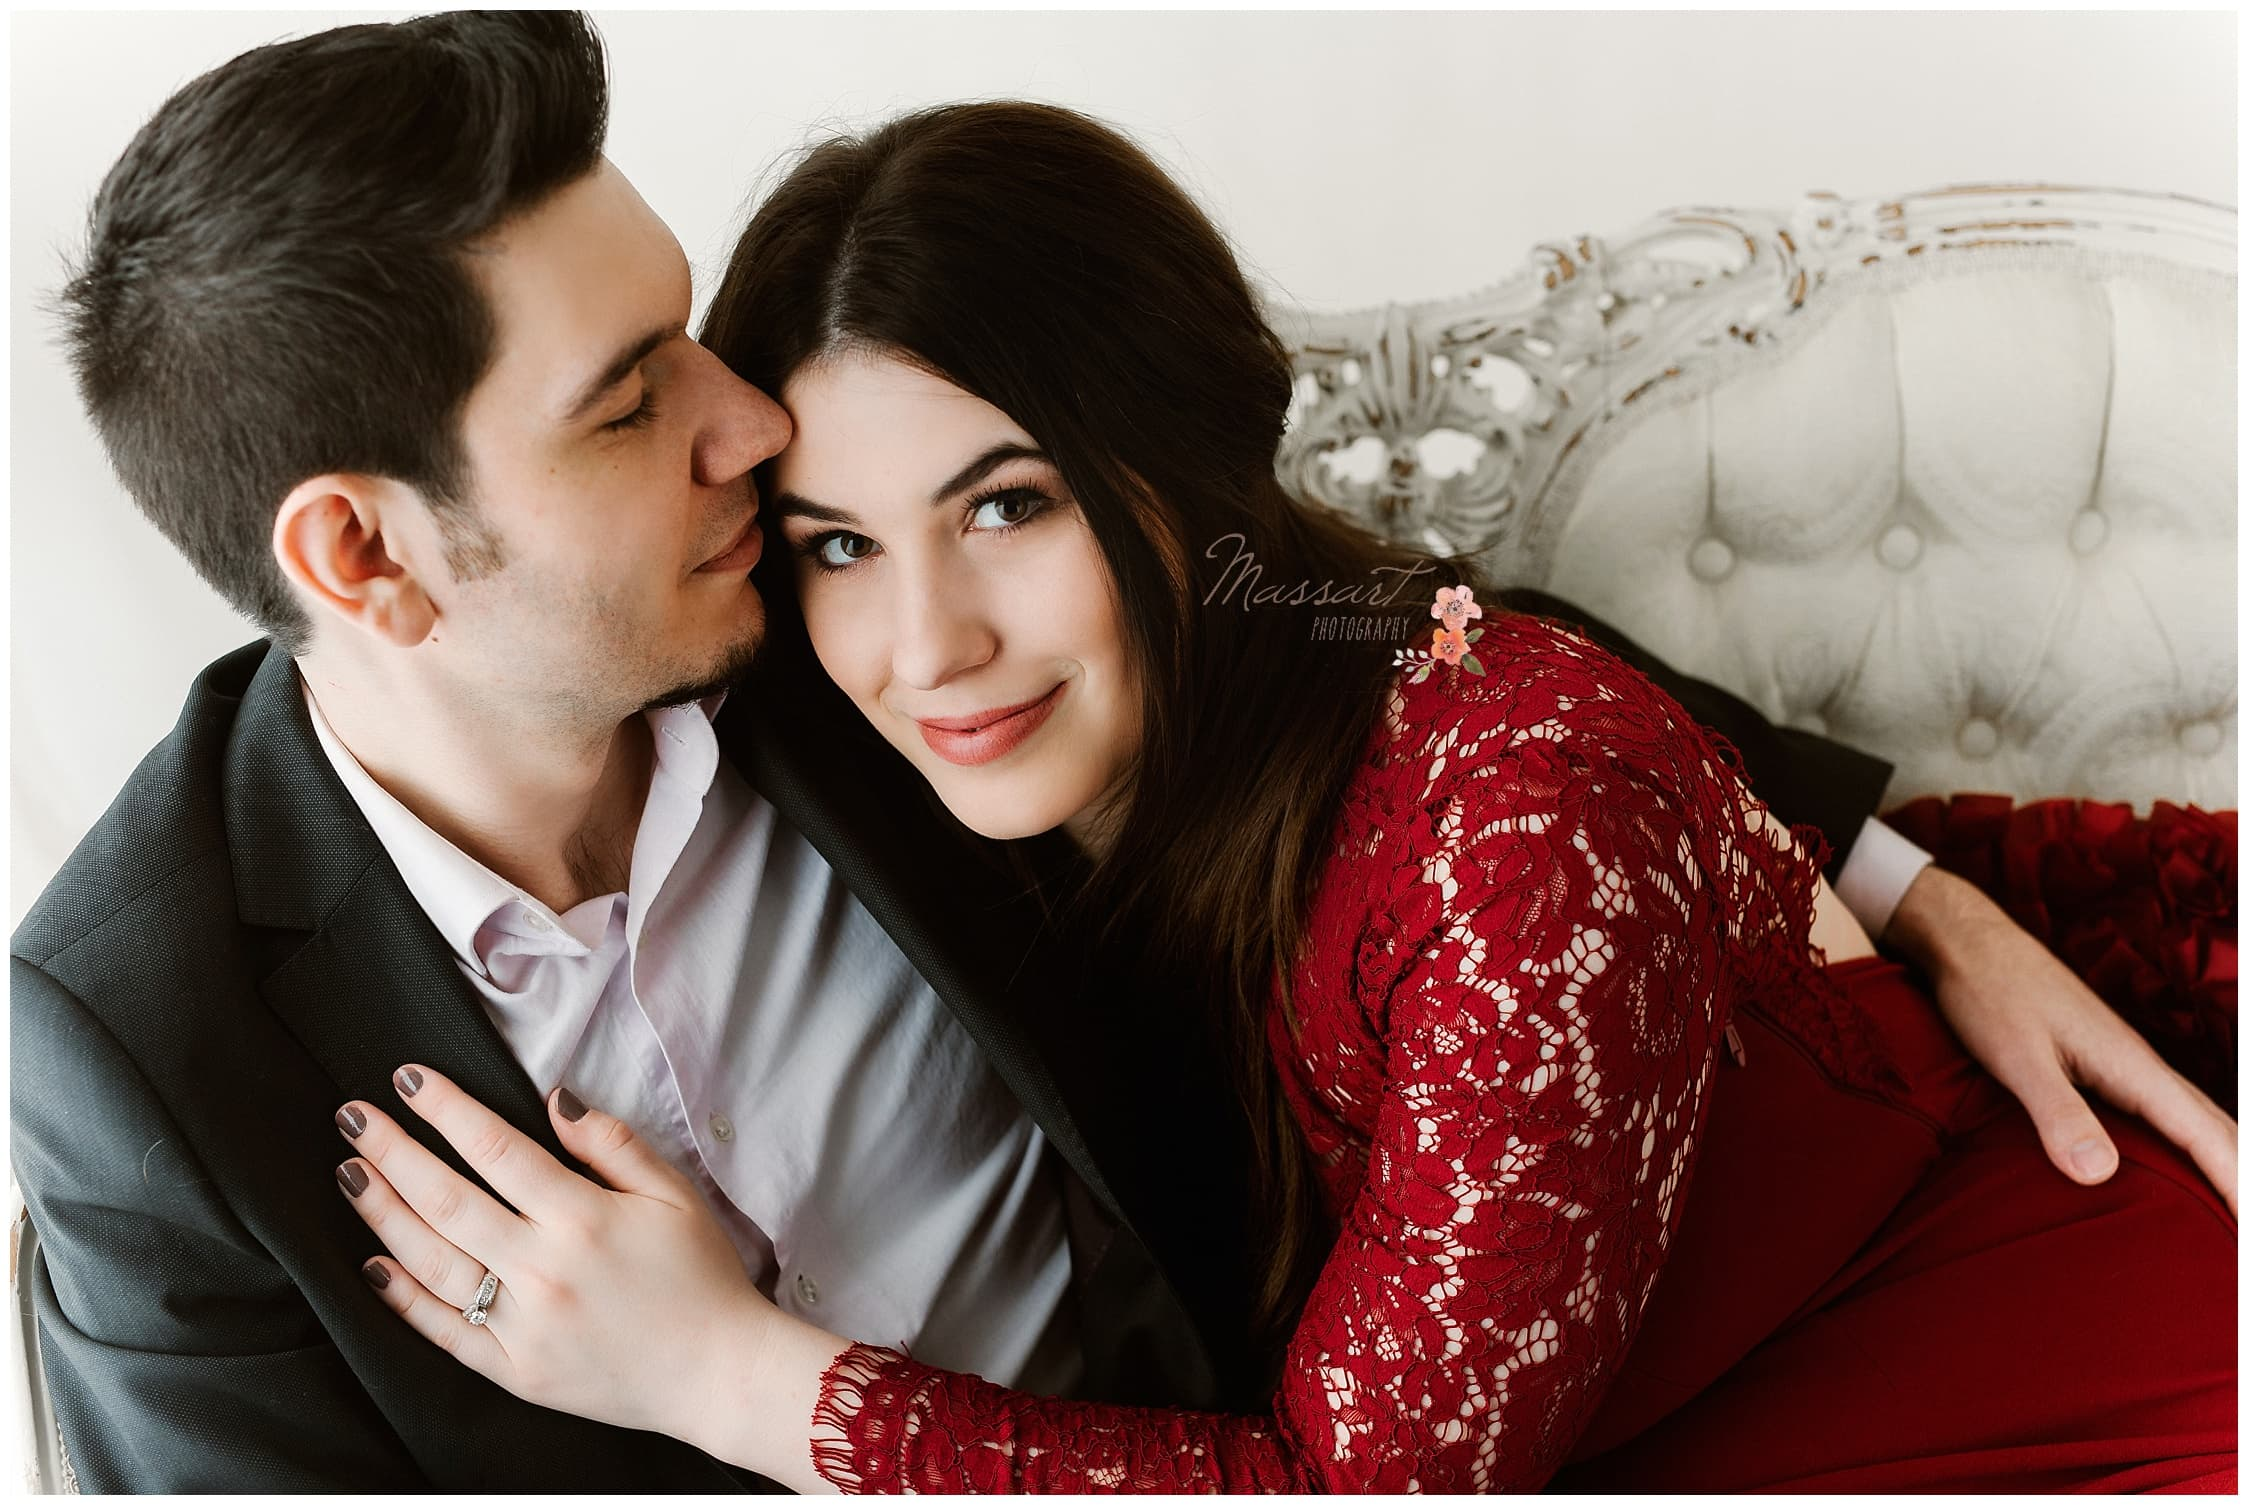 Engagement pictures inside of Massart Photography's studio in Rhode Island